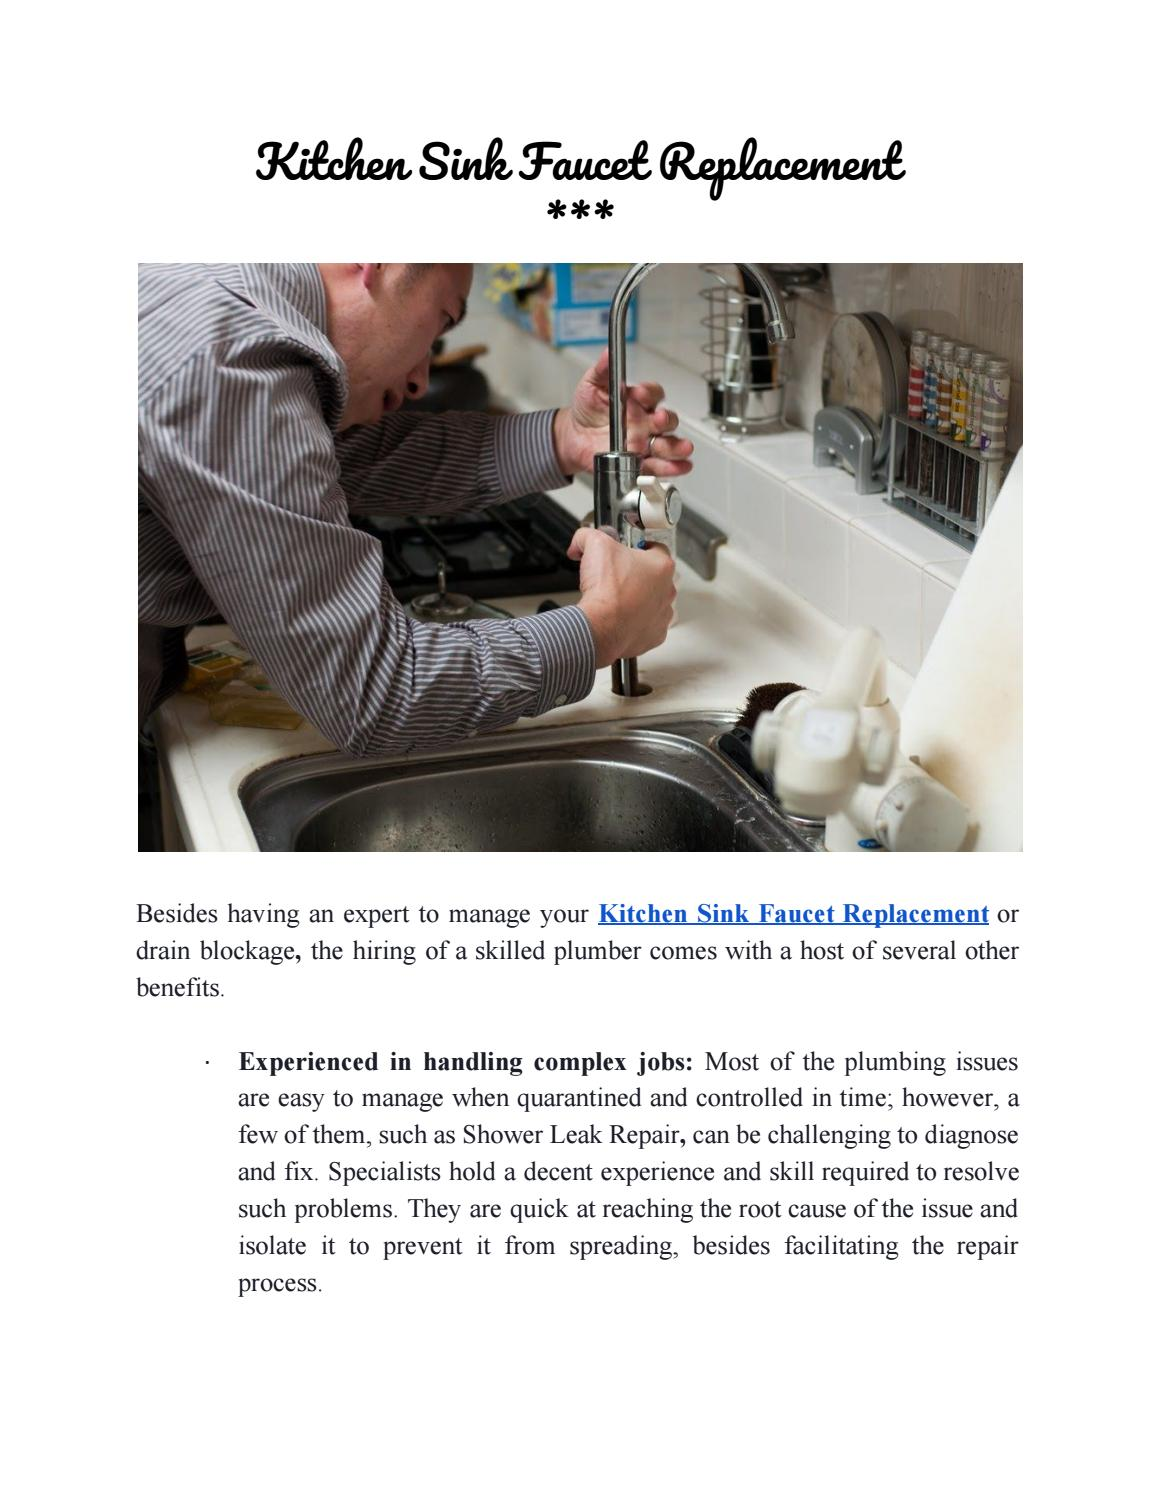 kitchen sink faucet replacement by